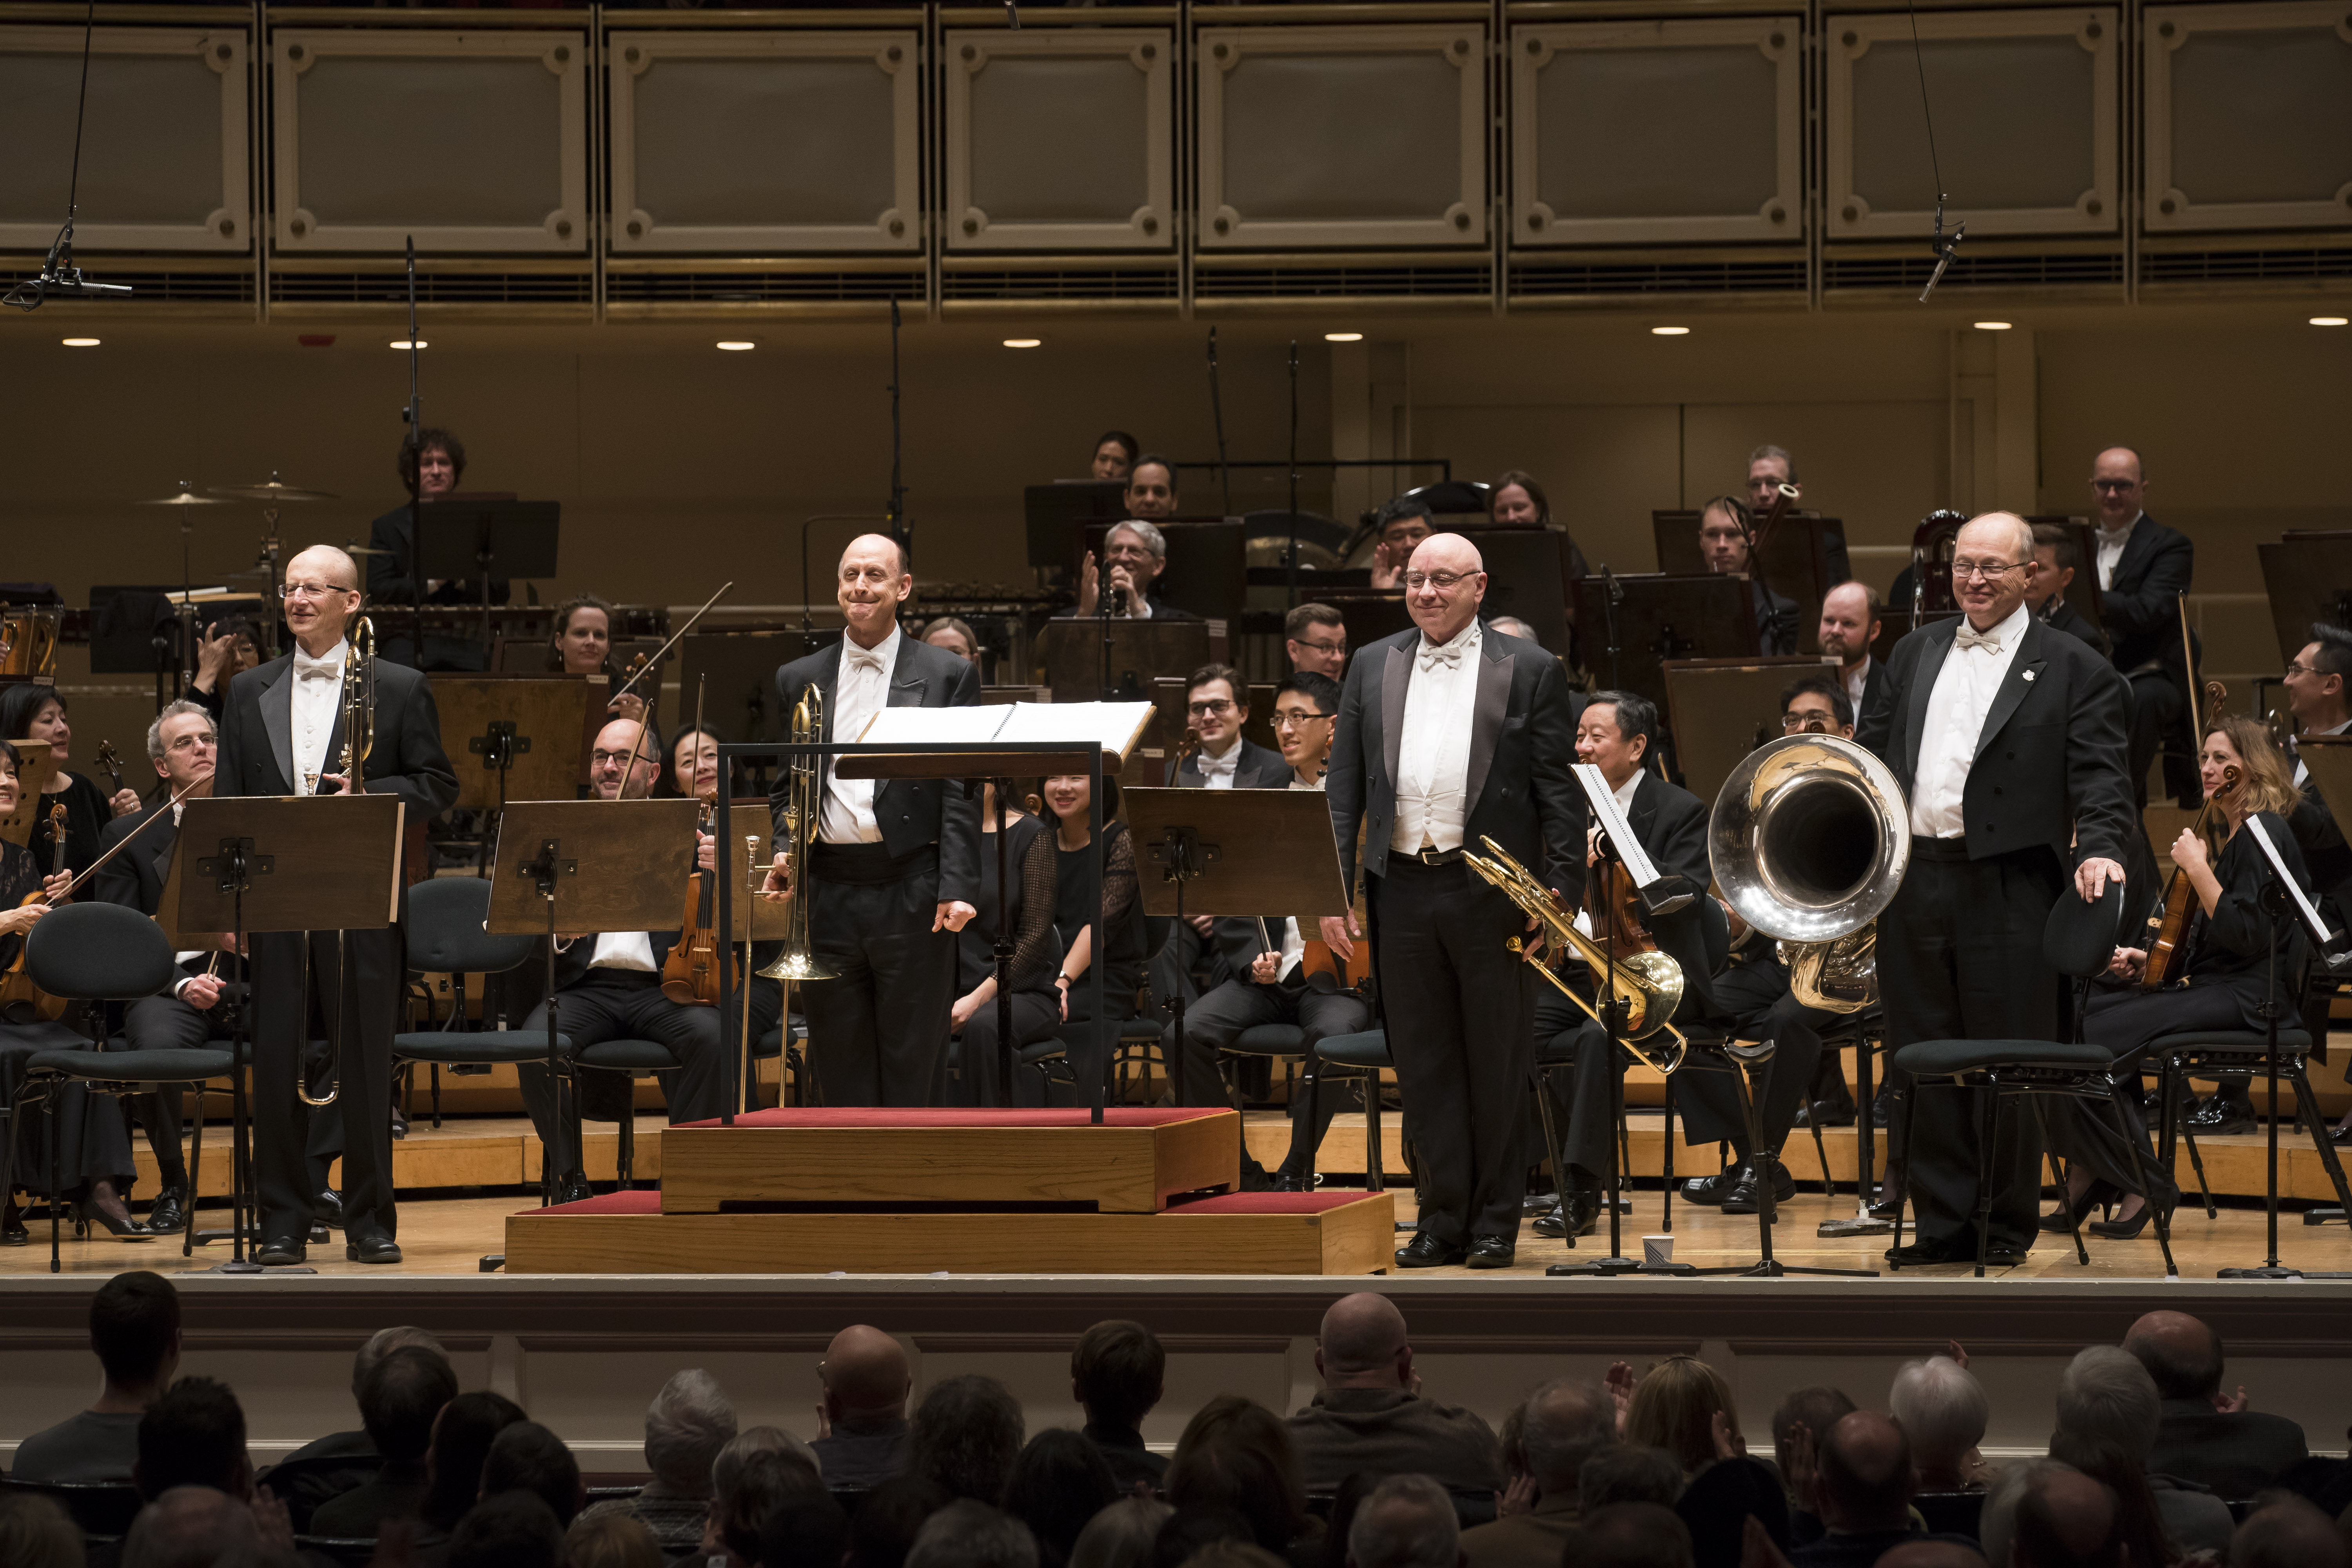 The Chicago Symphony Orchestra world premiere of Jennifer Higdon´s ´Low Brass Concerto´ featured Jay Friedman (trombone), Michael Mulcahy (trombone), Charles Vernon (bass trombone) and Gene Pokorny (tuba).